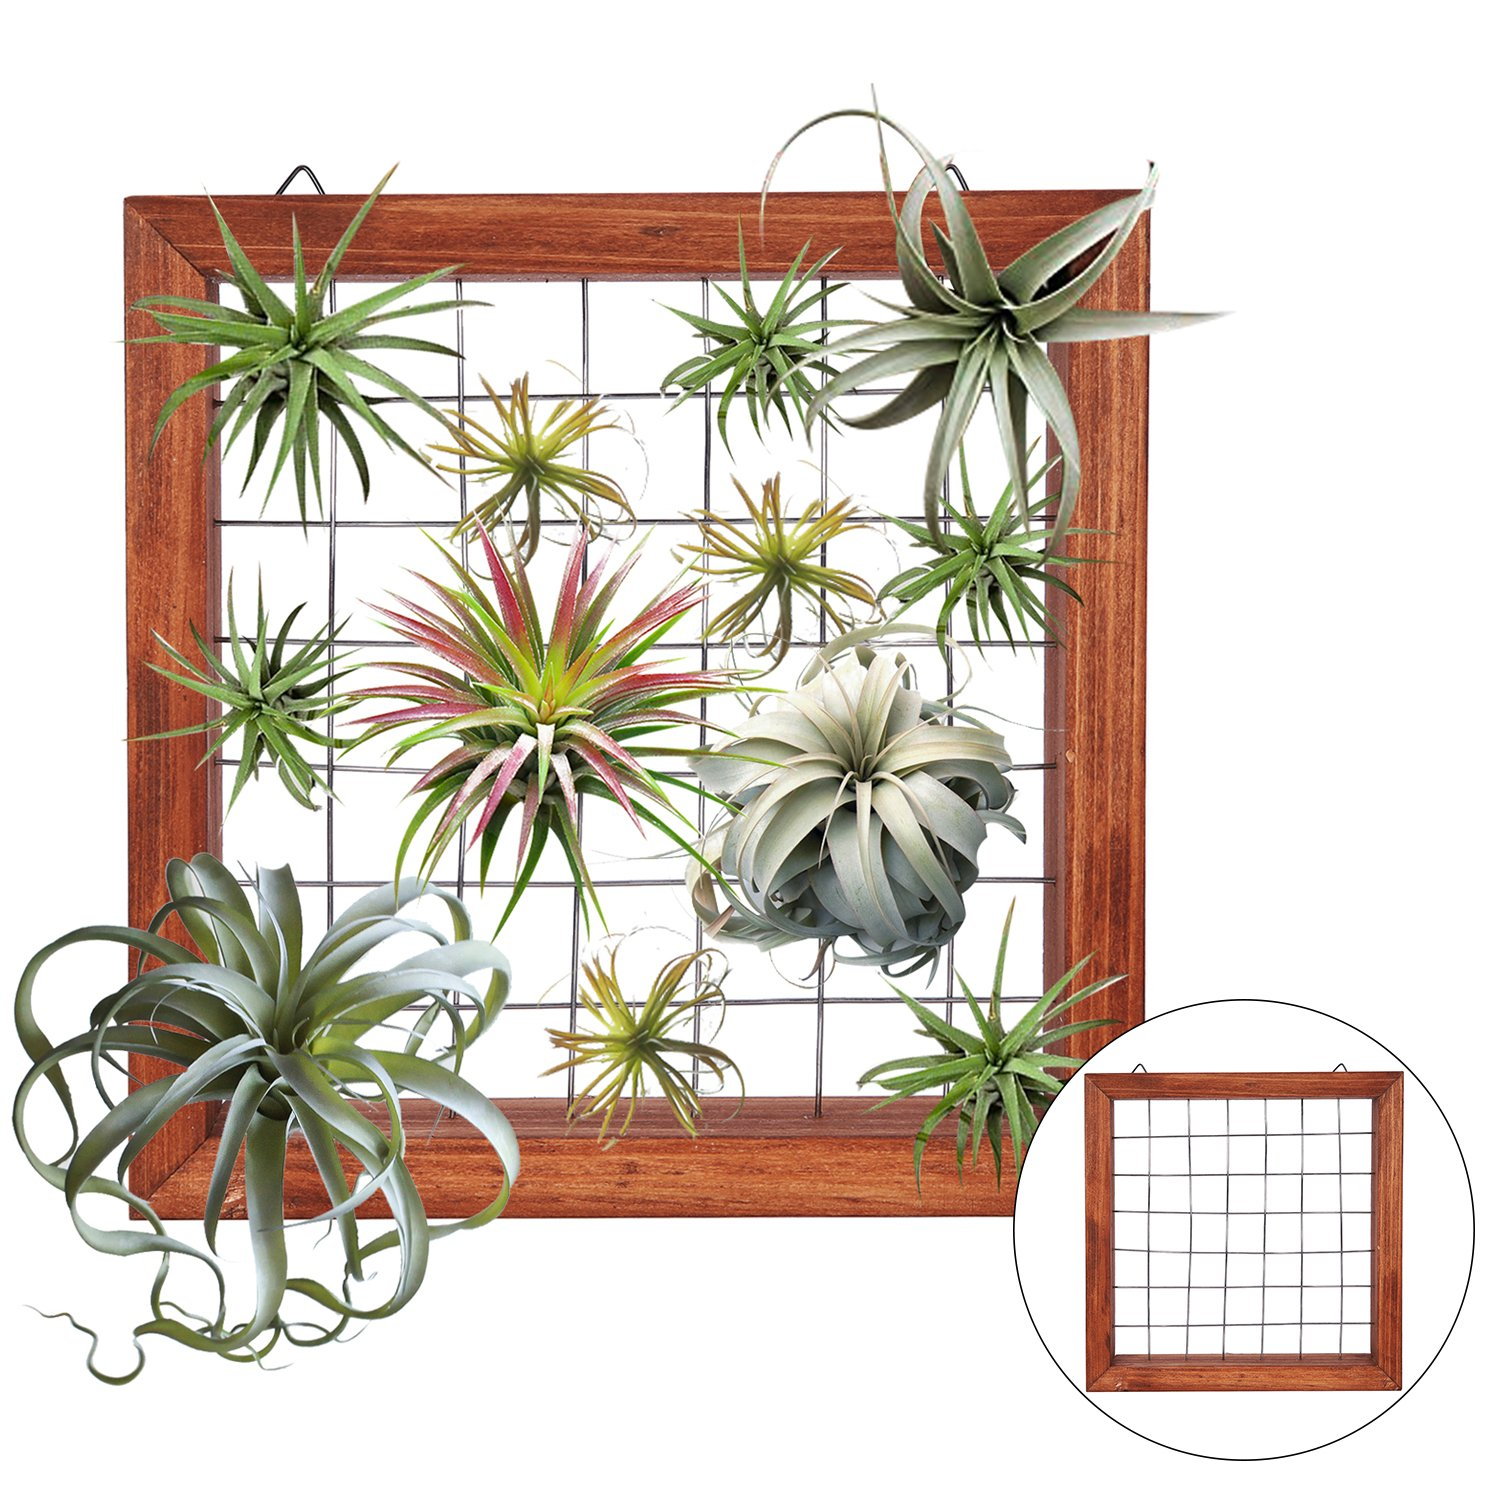 Air Plants Frame Bromeliads Wall Holder DIY Airplant Hanger Tillandsia Wall Display Succulent Stand Flower Shelf Planter Basket with Hanging Hooks Balcony Patio Garden Home Décor (PLANTS NOT INCLUDED)